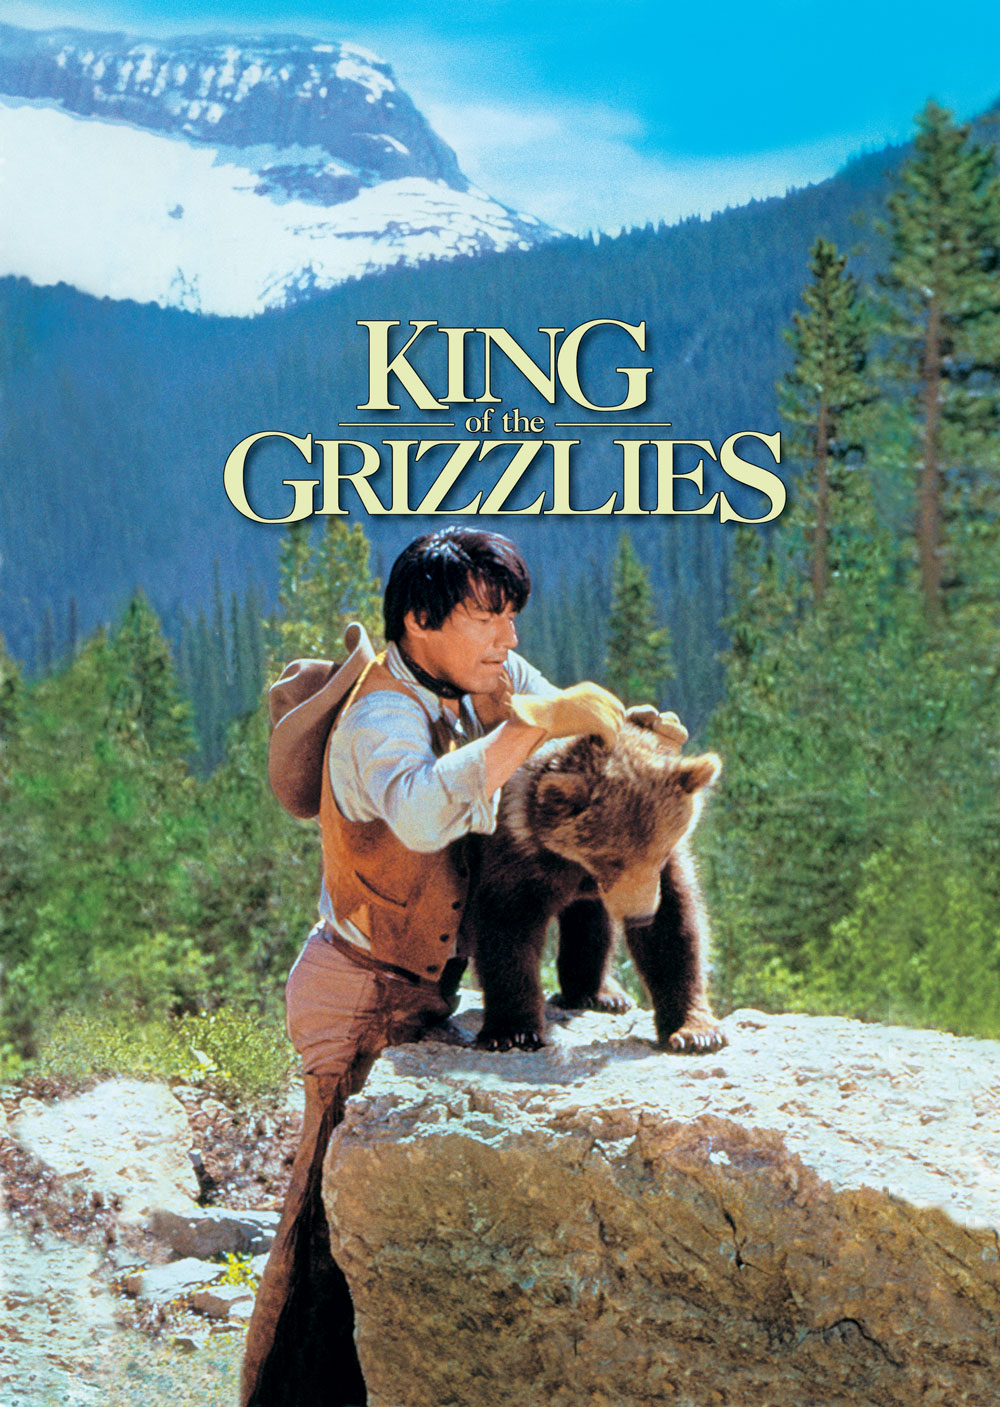 King of the Grizzlies poster